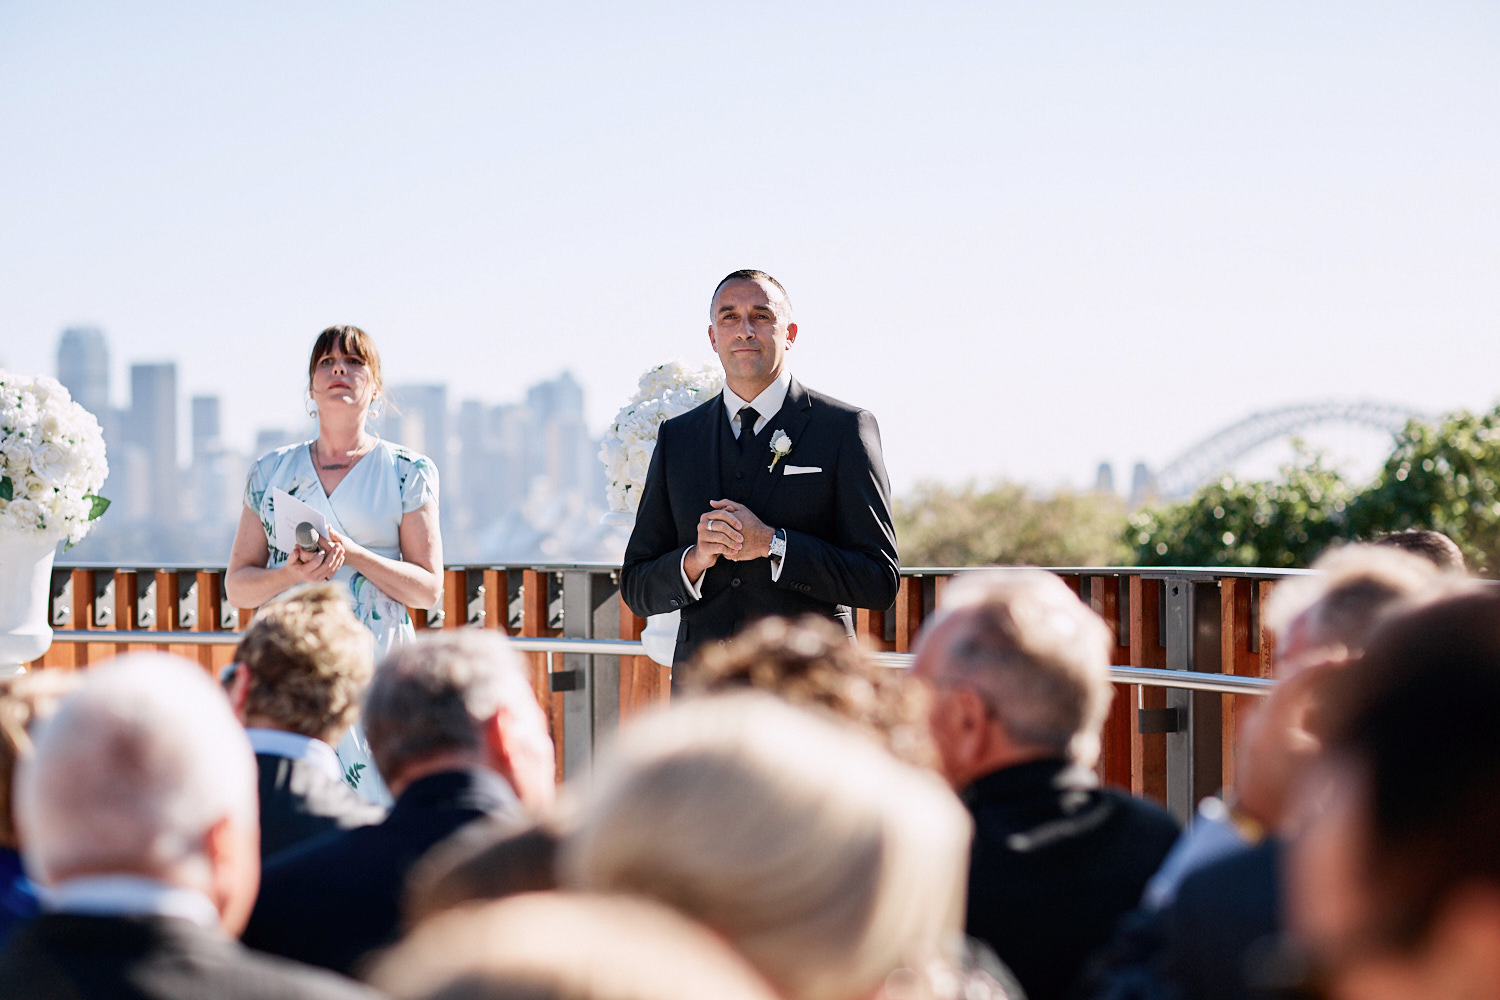 Groom and celebrant standing in front of guests with the Harbour Bridge in the distance on the Centenary Theatre terrace at Taronga Zoo by Blue Mountains wedding photographer Joshua Witheford